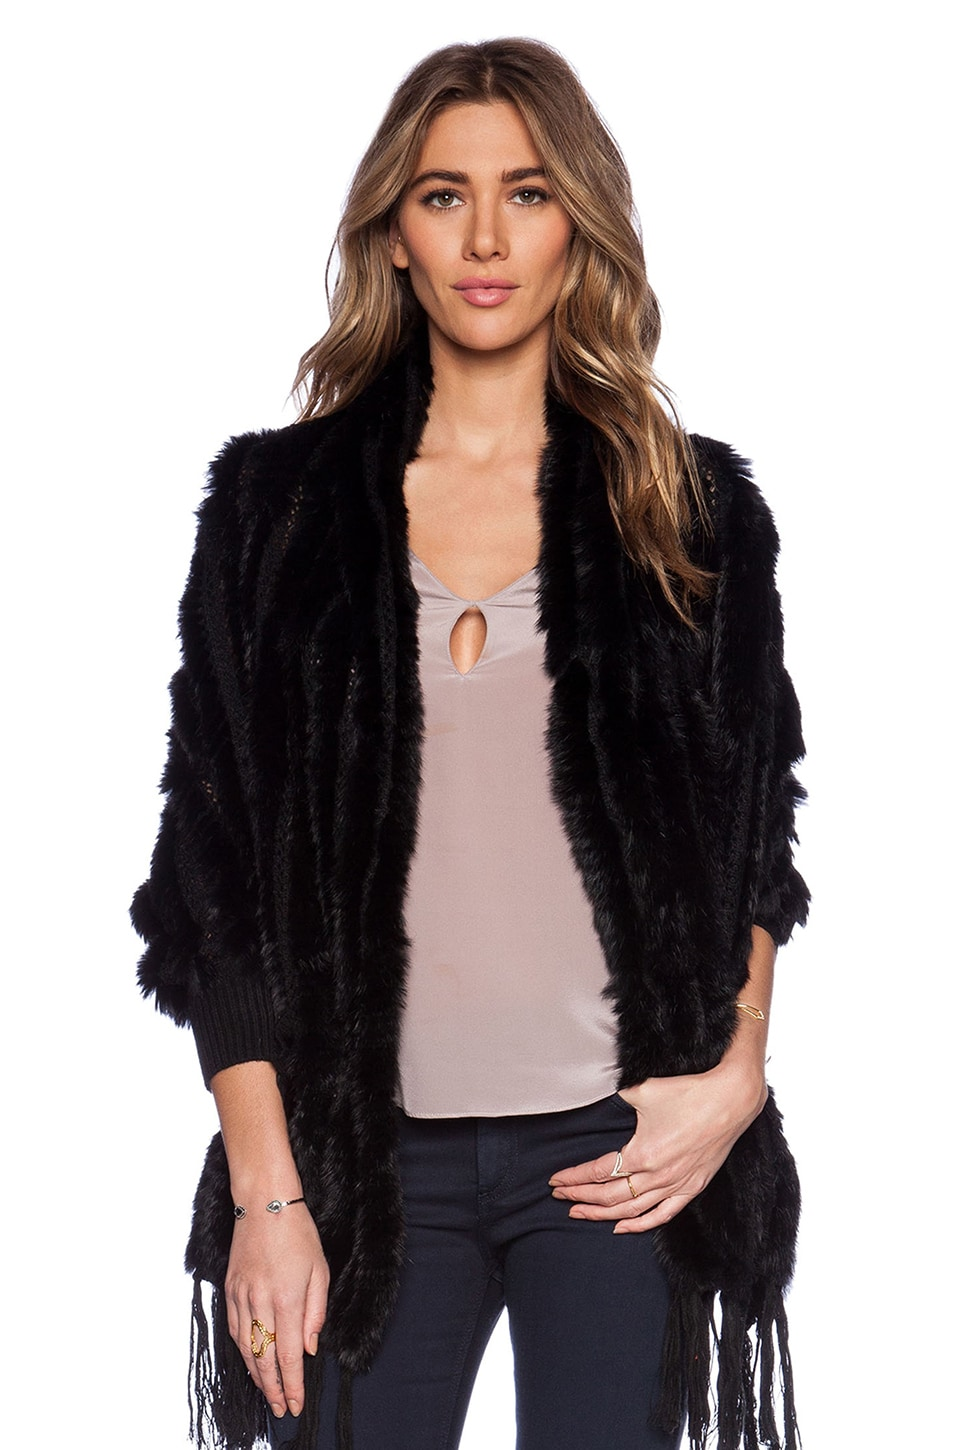 HEARTLOOM Shelby Rabbit Fur Wrap with Rabbit Fur in Black